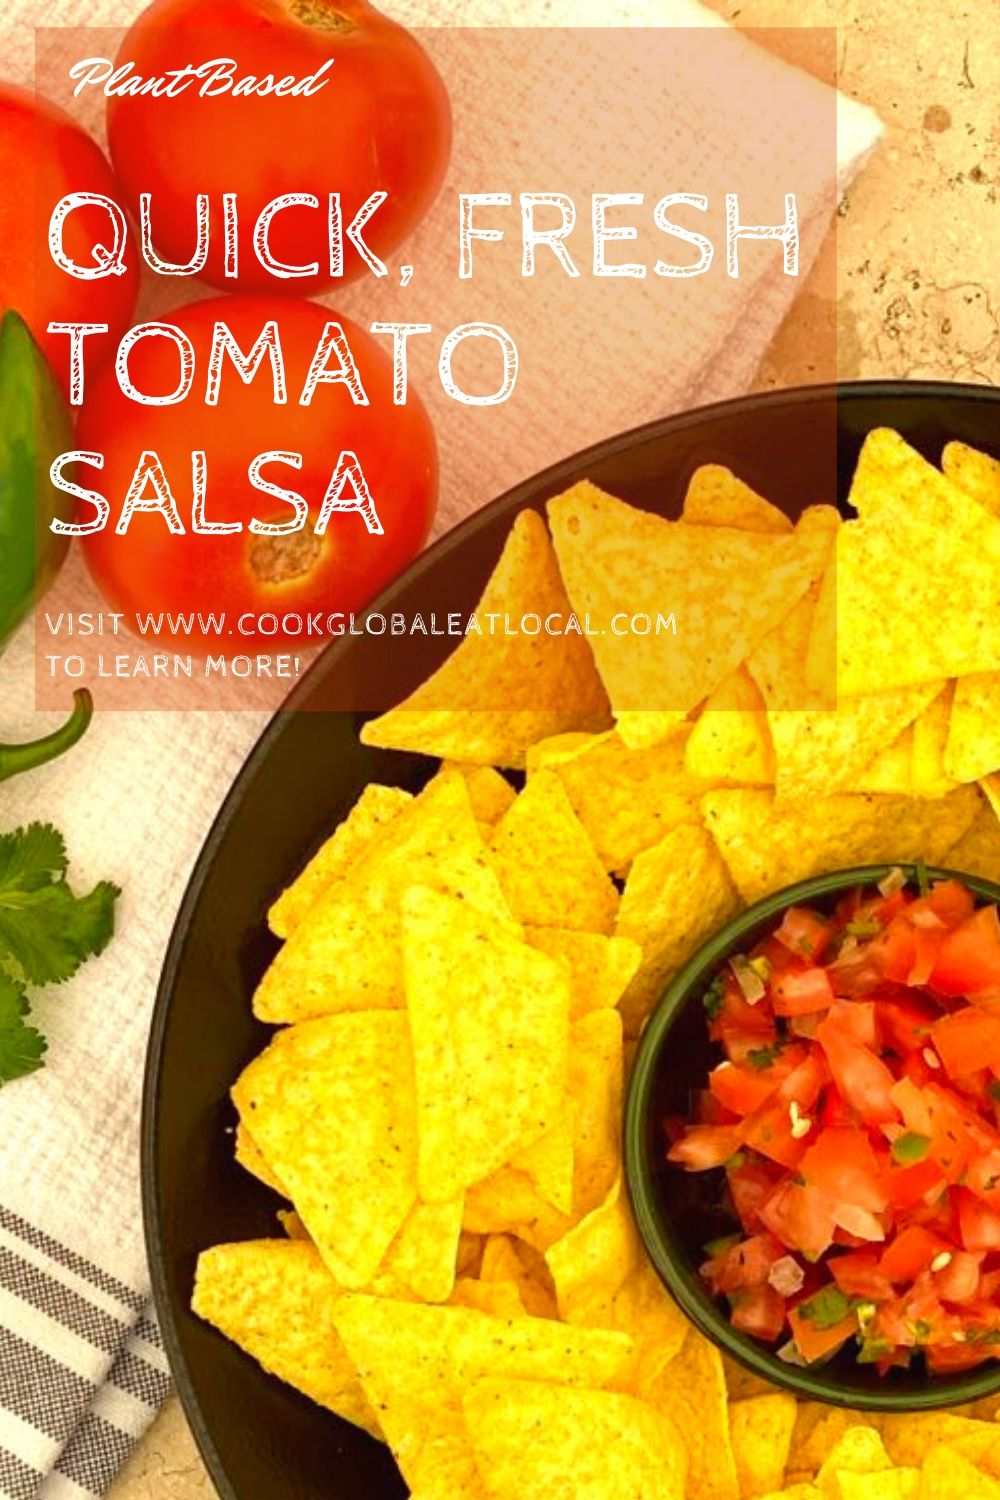 Quick, Fresh Tomato Salsa (Pico de Gallo) | cookglobaleatlocal.com